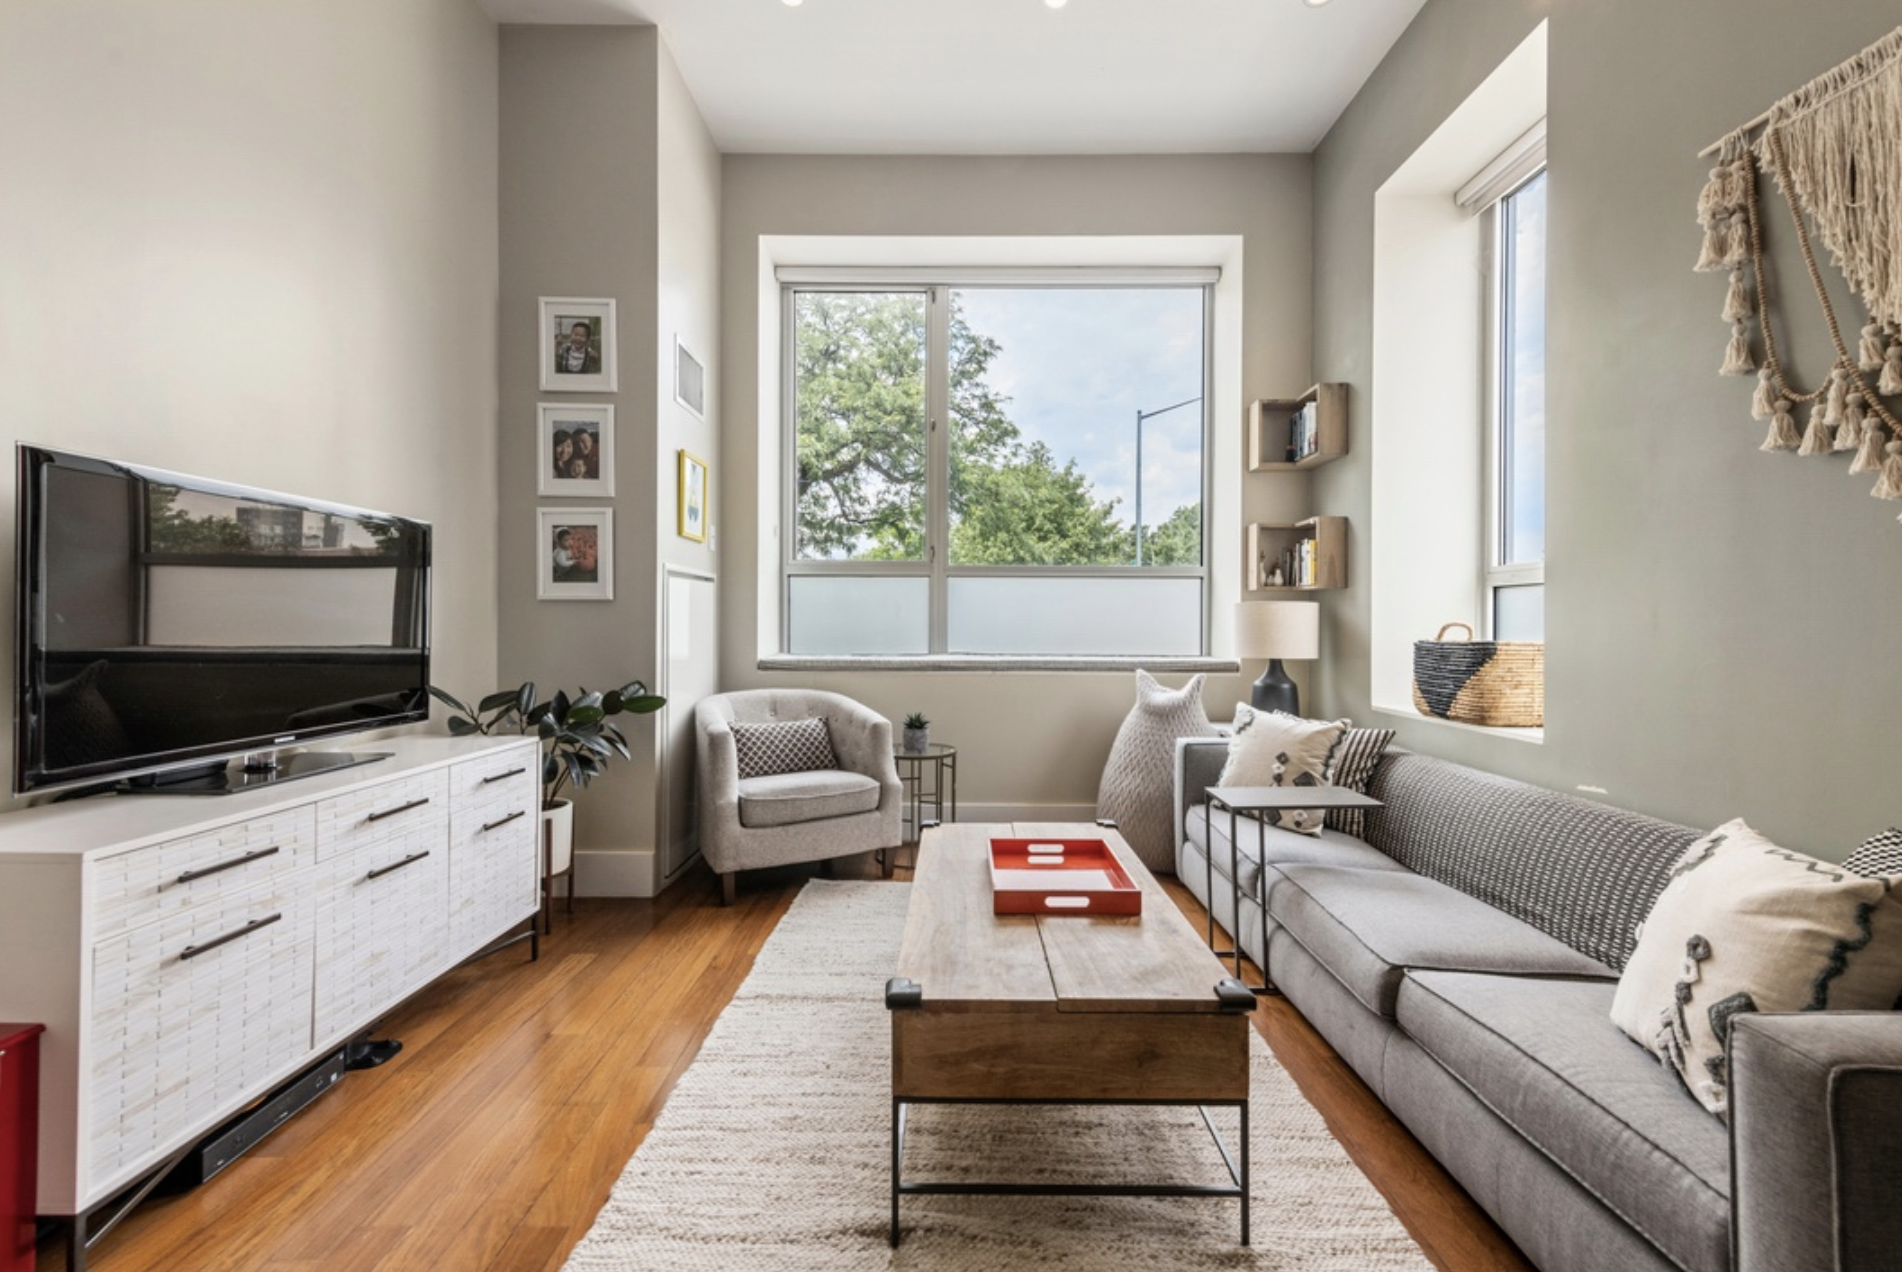 50 BAYARD STREET, 1H - $1,350,000 // 2 Beds // 2 Baths // 1,112 SQFTFor those of you who love loft-like living, your search ends here. The IKON is a converted warehouse built in 1900 which exemplifies Brooklyn living. Unit 1H, is a unique corner split-wing 2-bedroom and 2-bathroom offering triple exposures, dramatic 12-ft ceilings and large windows framing tree-top views of the recently re-vamped McCarren Park.